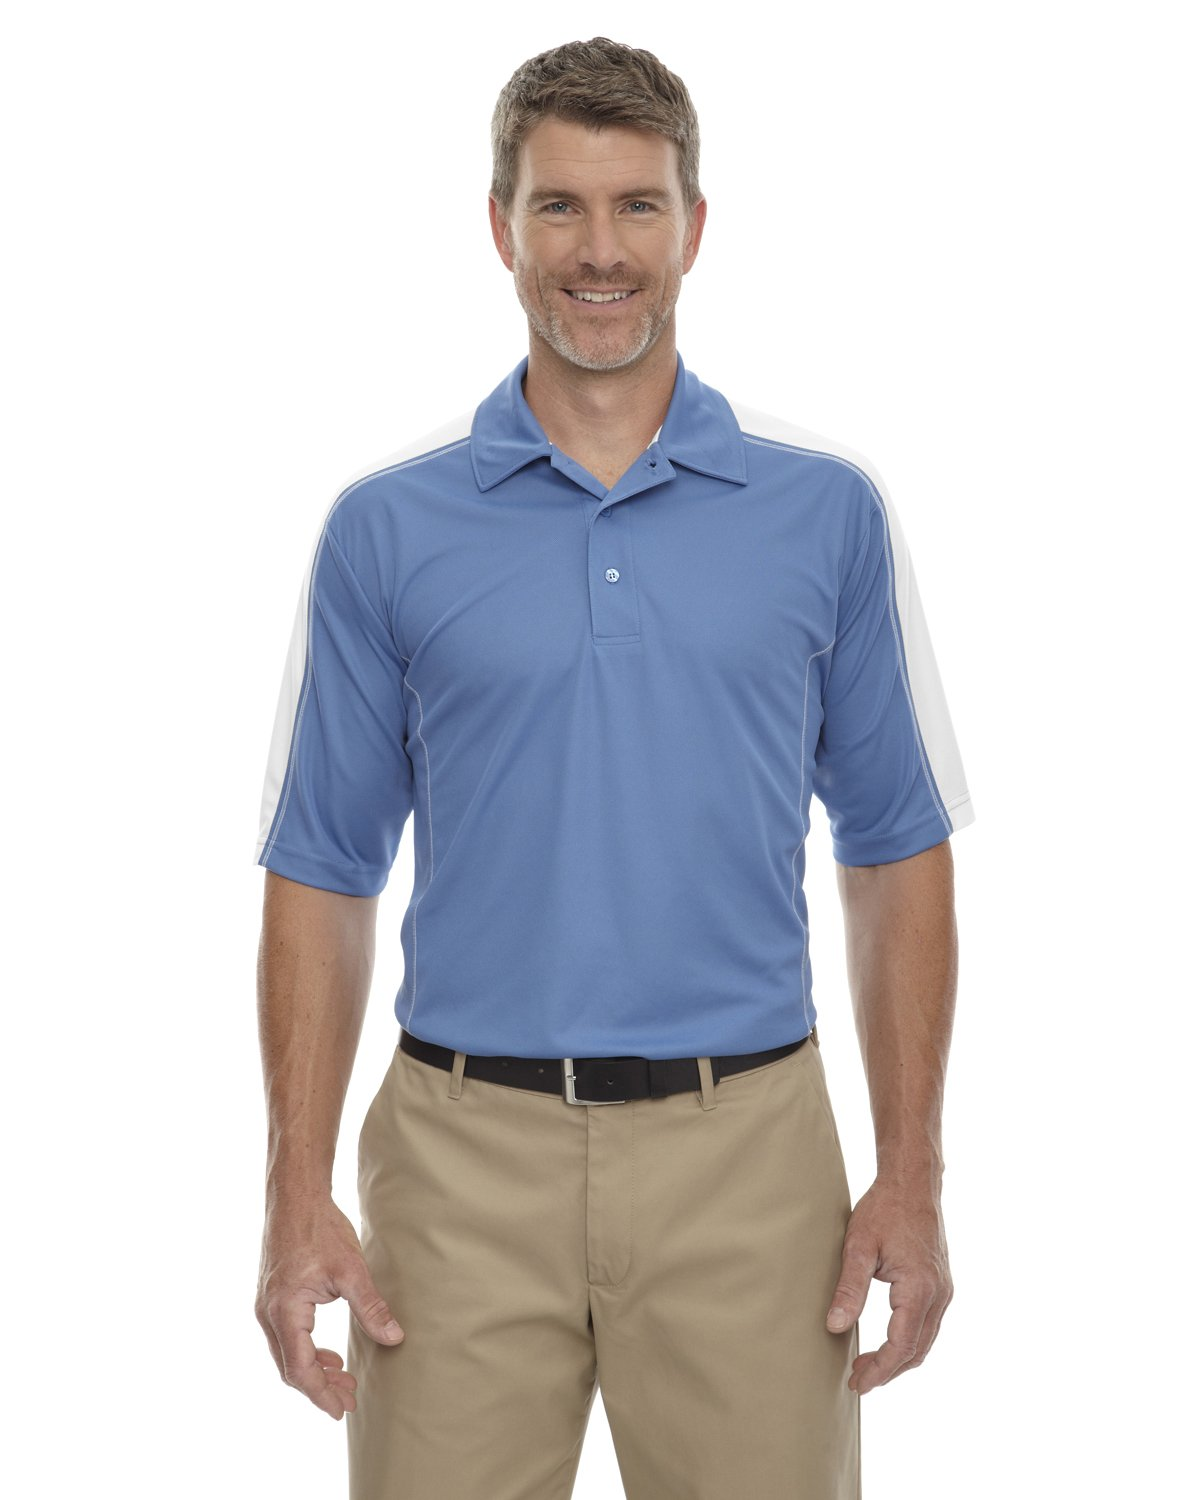 Extreme Eperformance Men's Piqué Colorblock Polo, 4XL, Lake Blue 800 by Ash City - Extreme